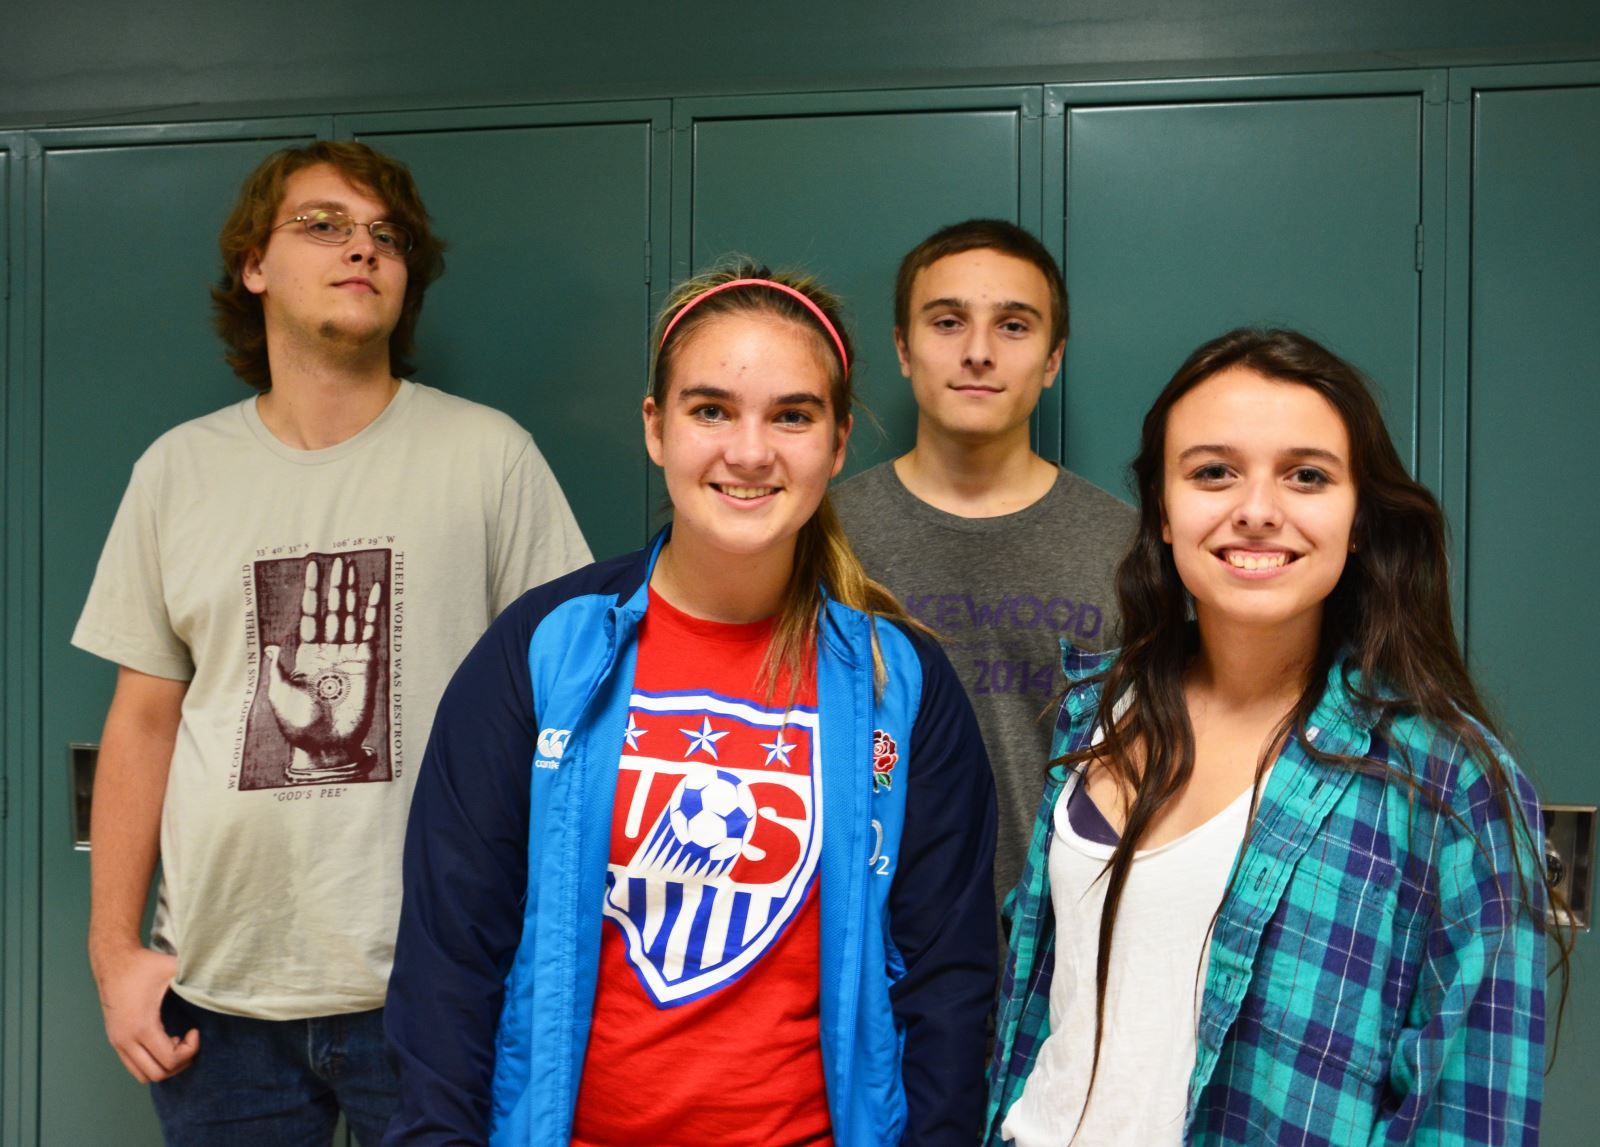 NATIONAL MERIT SEMIFINALISTS LEAD LIST OF ACADEMIC STANDOUTS